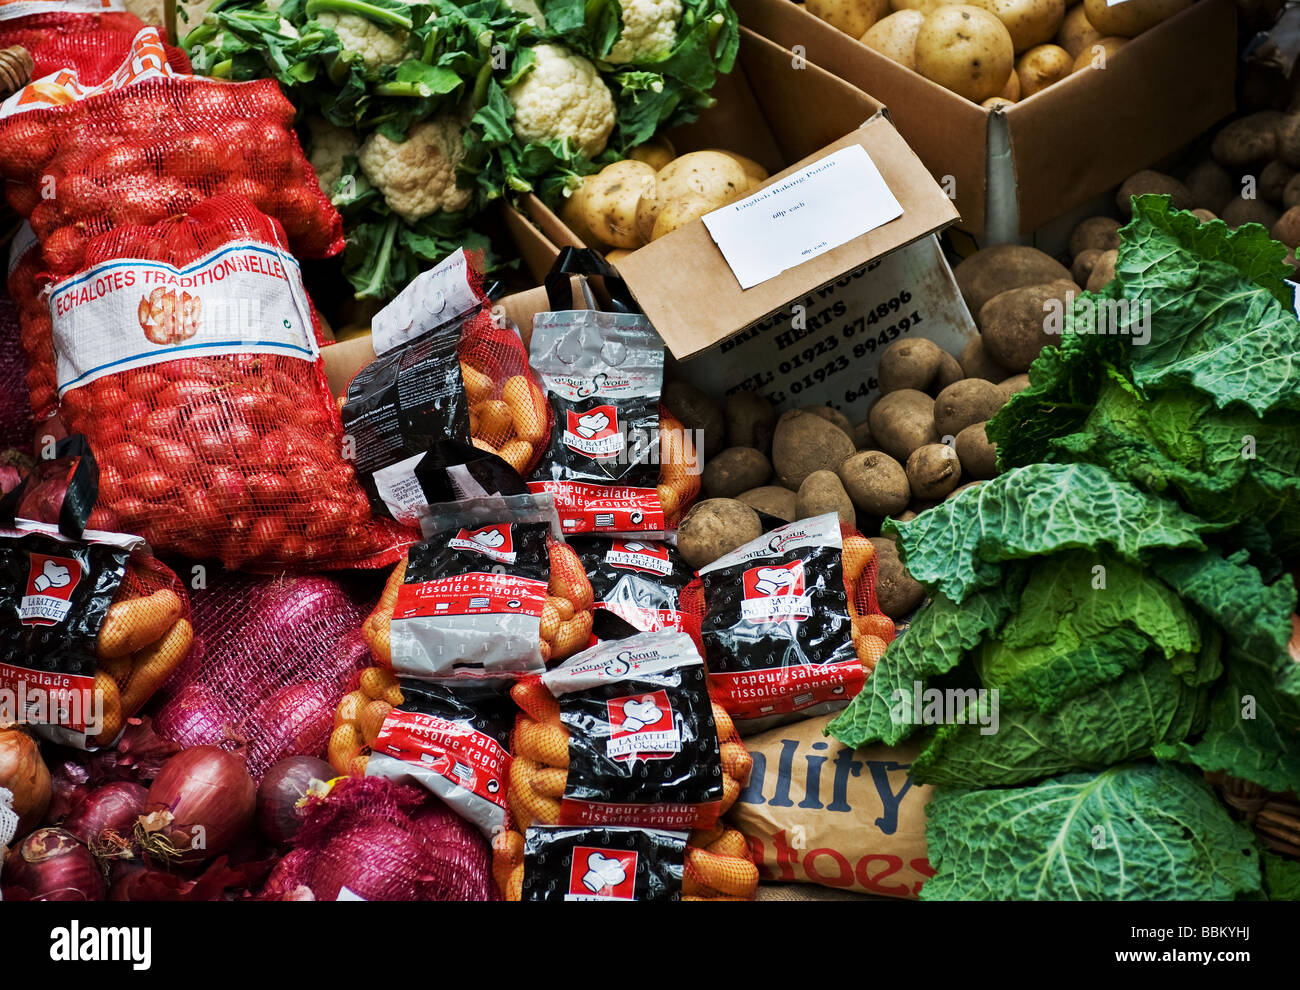 Sacks of vegetables and boxes of potatoes.  Photo by Gordon Scammell - Stock Image